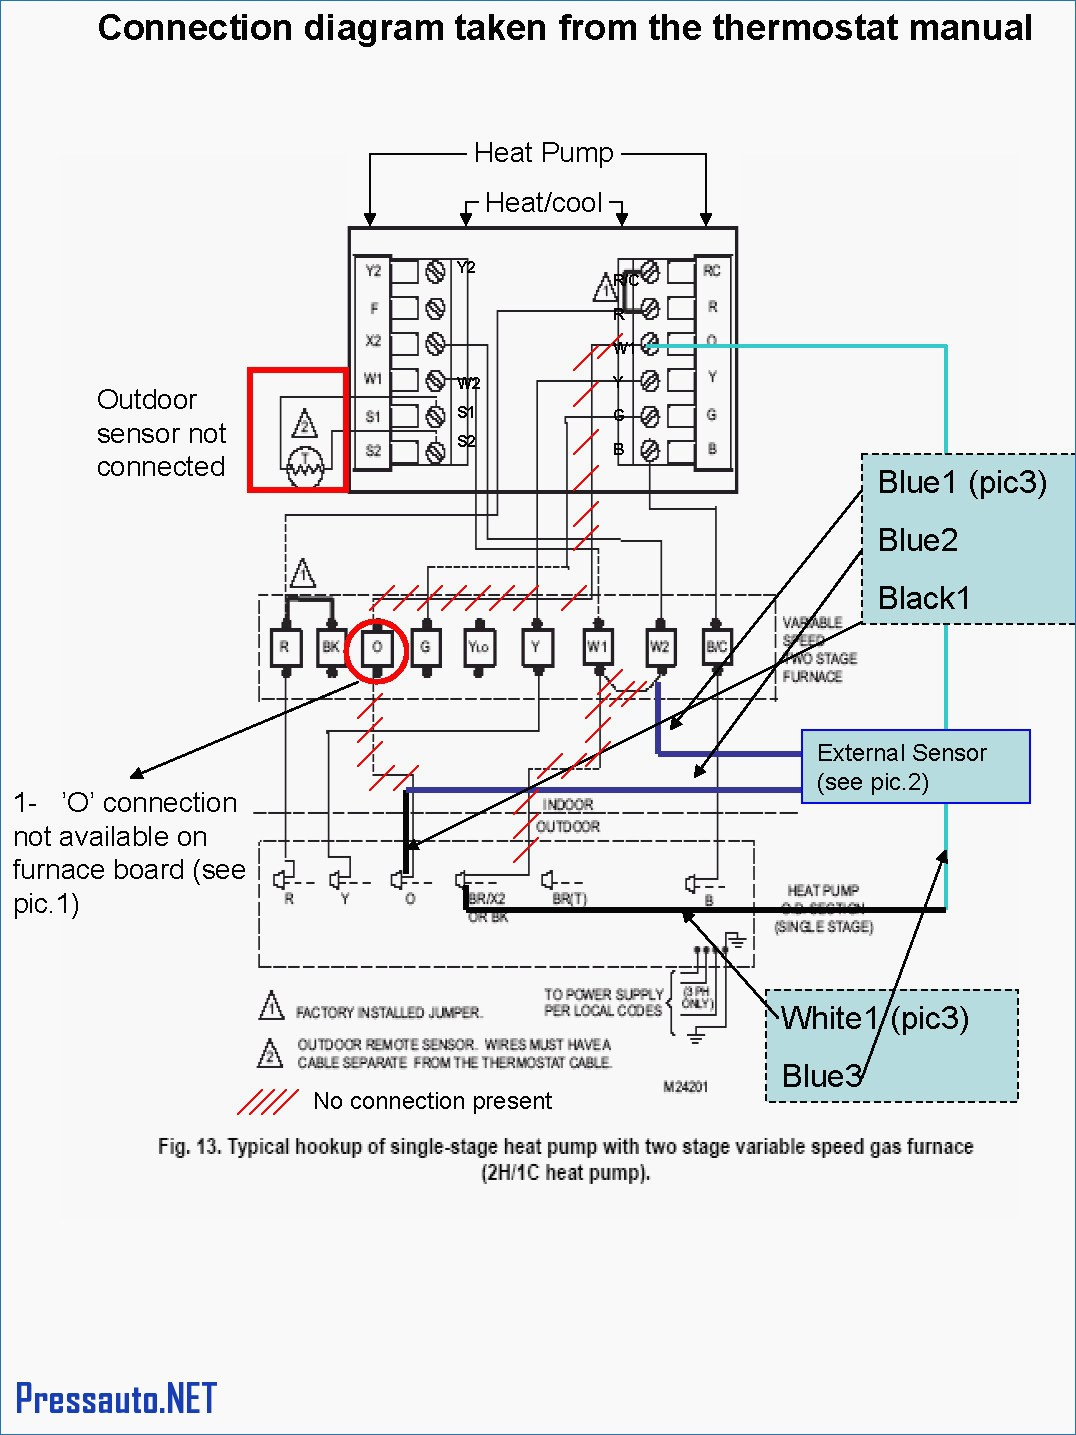 pool heat pump wiring diagram Collection-Pool Heat Pump Wiring Diagram Fresh Trane Heat Pump Troubleshooting Gallery Free Troubleshooting 3-d